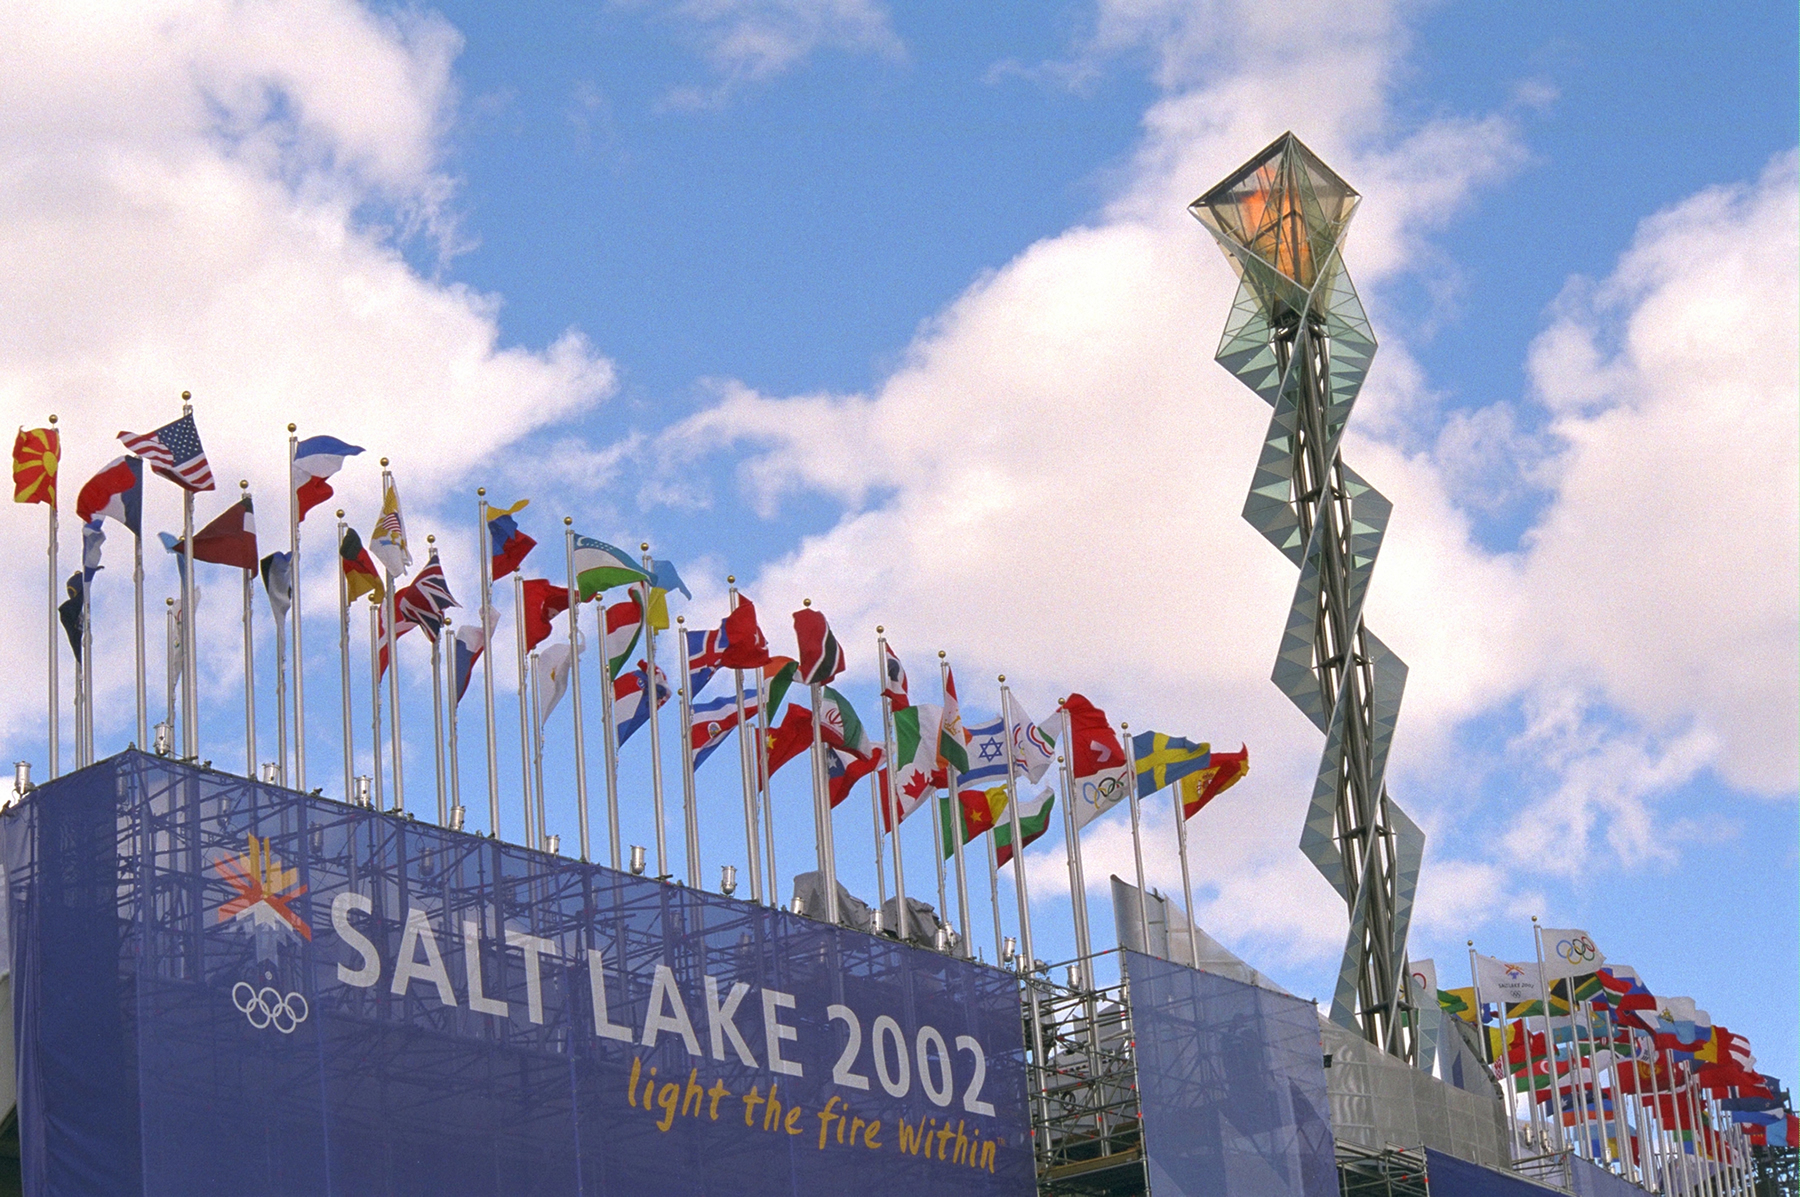 In recognition of the XX Olympic Winter Games, which begin in Torino, Italy, on Feb. 10, Utah?s own Olympic Cauldron will burn again during the evening hours of Feb. 10, 11 and 12.